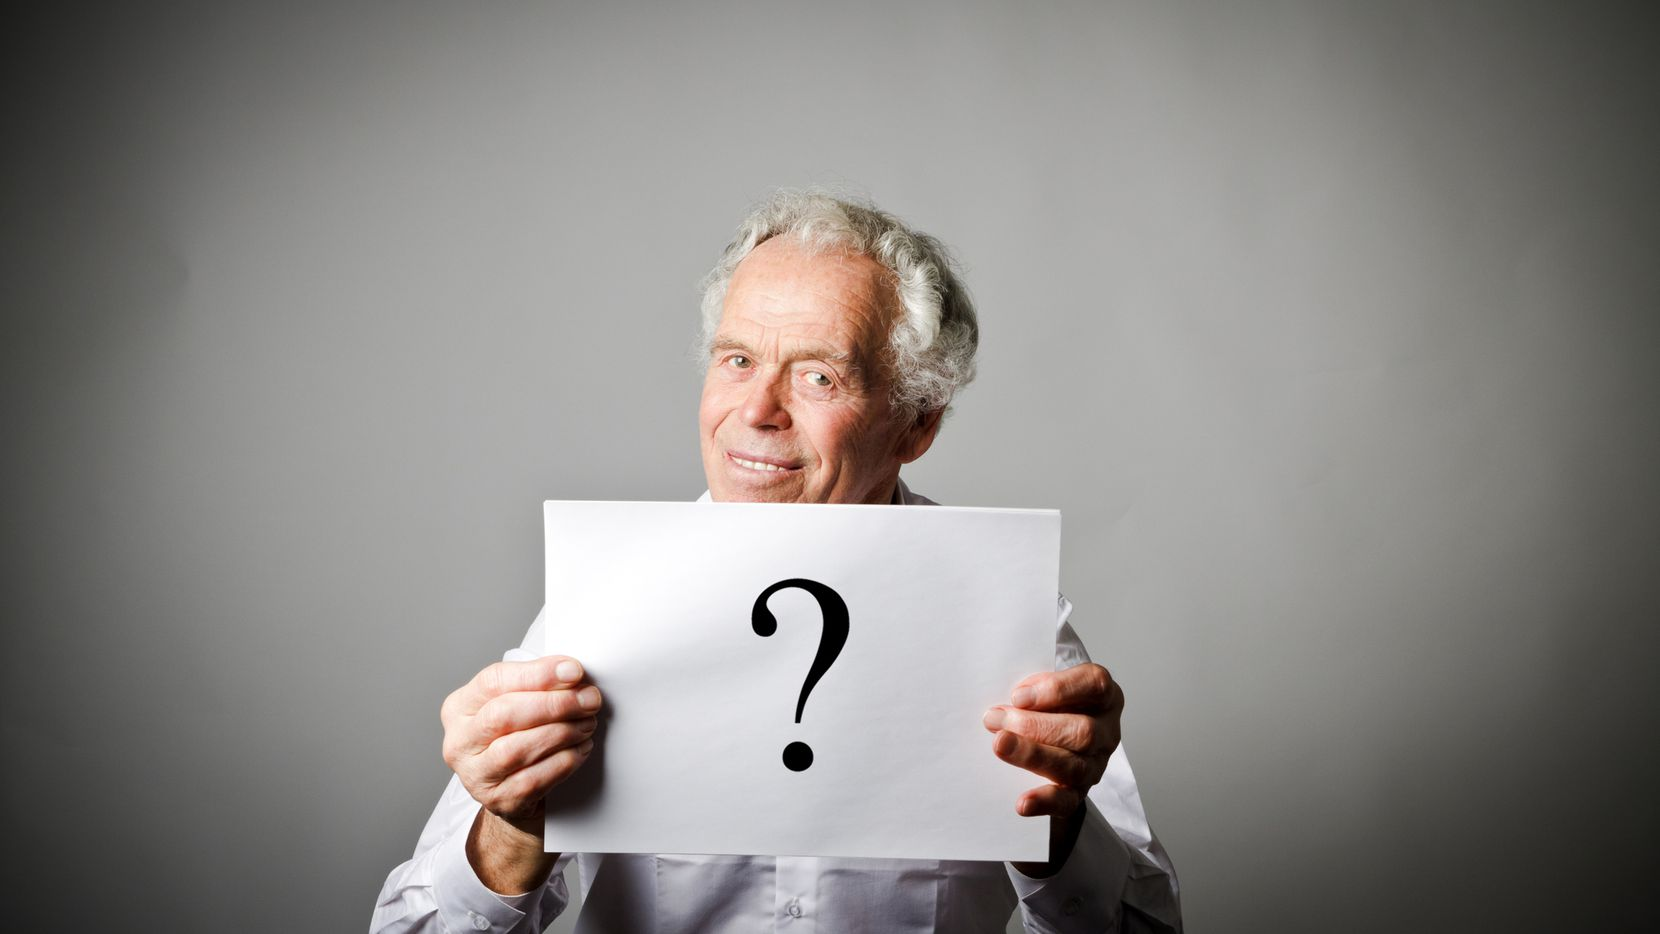 Most Social Security-related questions can be answered by visiting www.socialsecurity.gov.